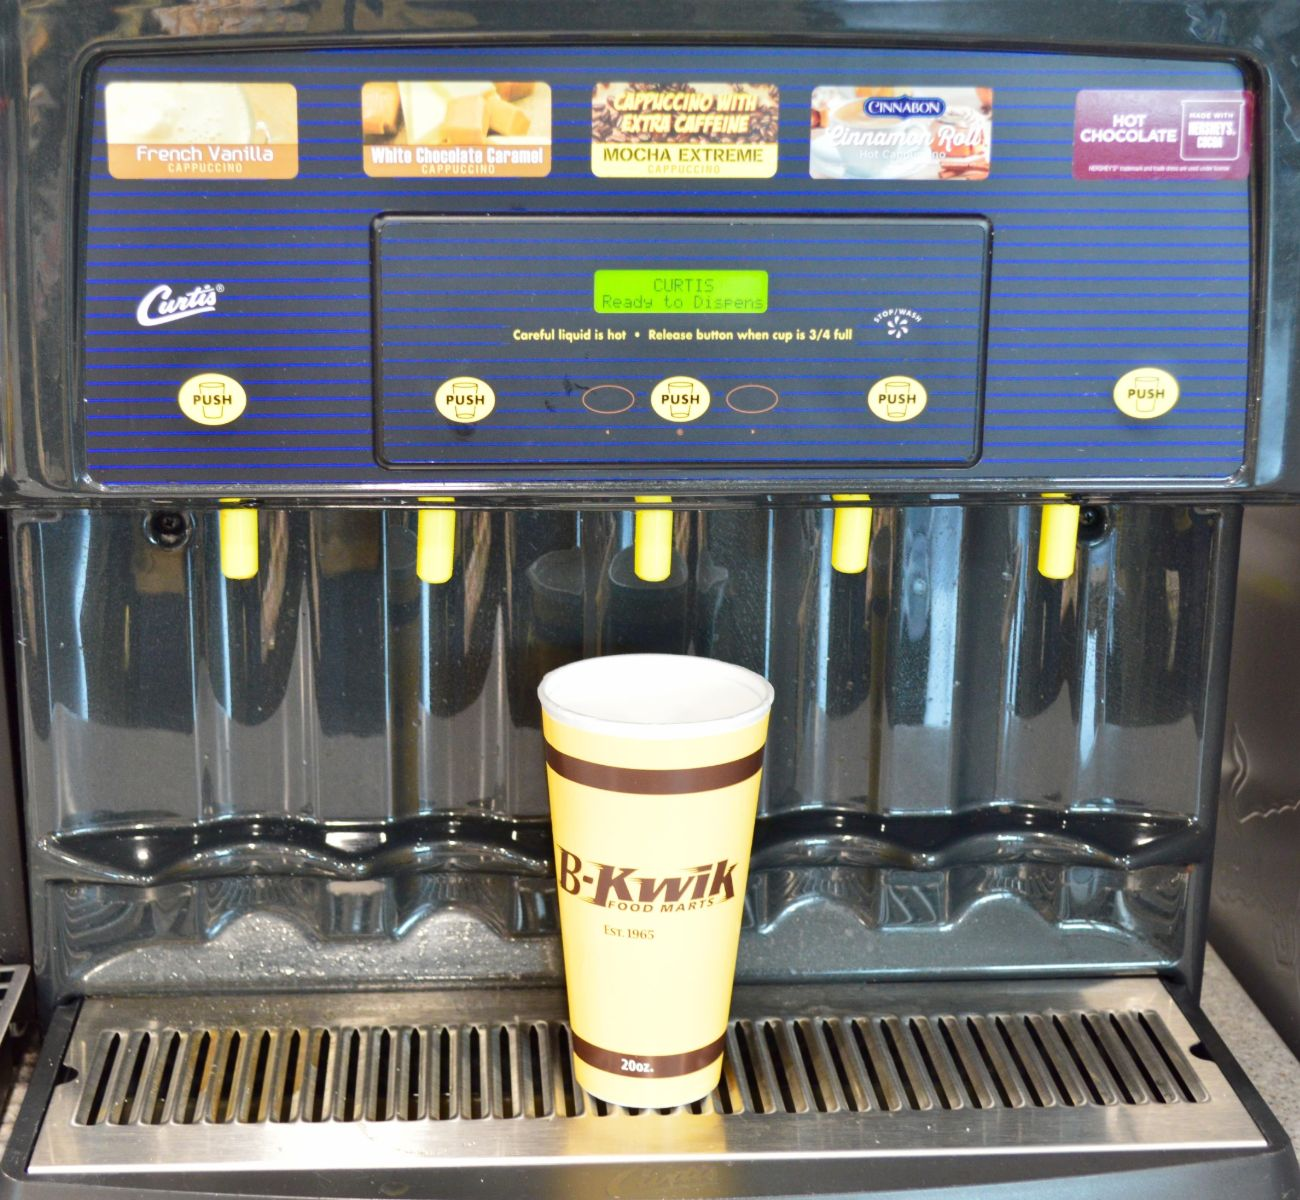 disposable cup under a hot chocolate and coffee machine